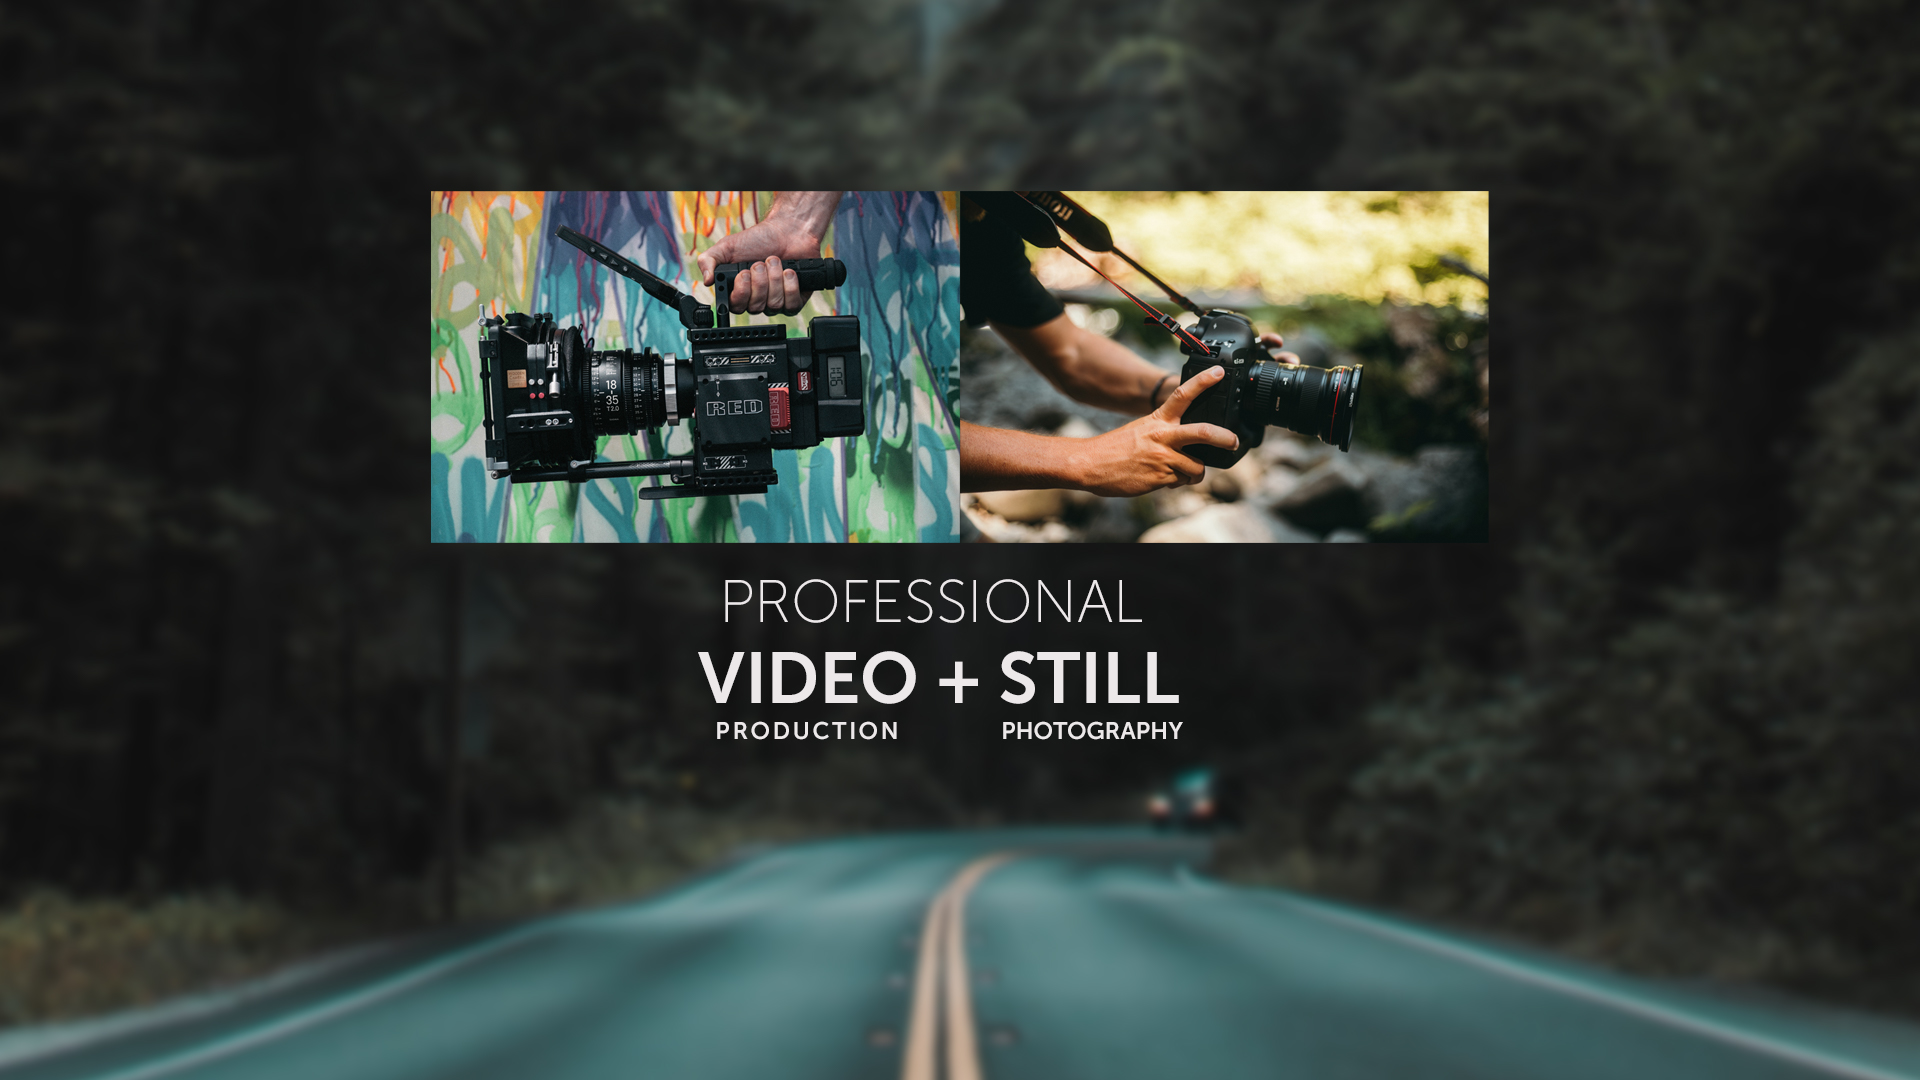 ORIGINAL VIDEO CONTENT PRODUCTION